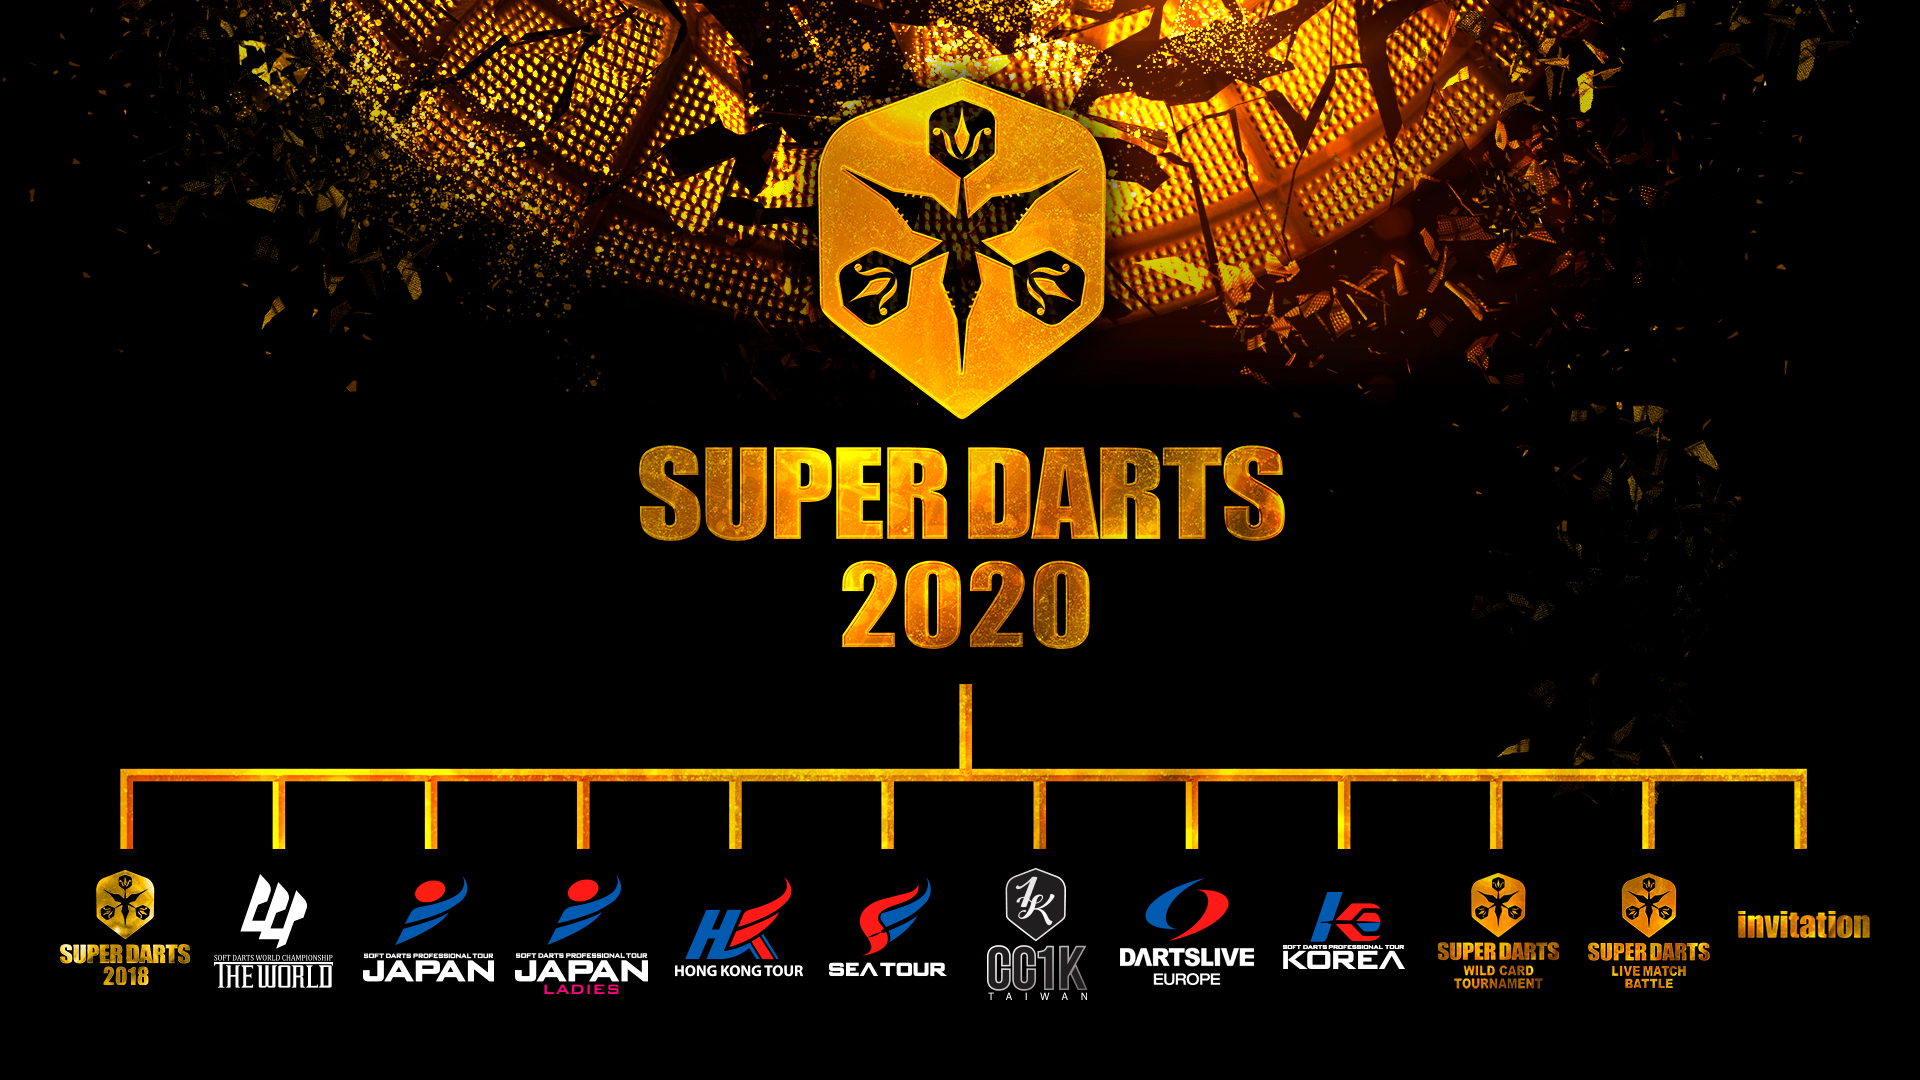 SUPER DARTS 2020 loadmap